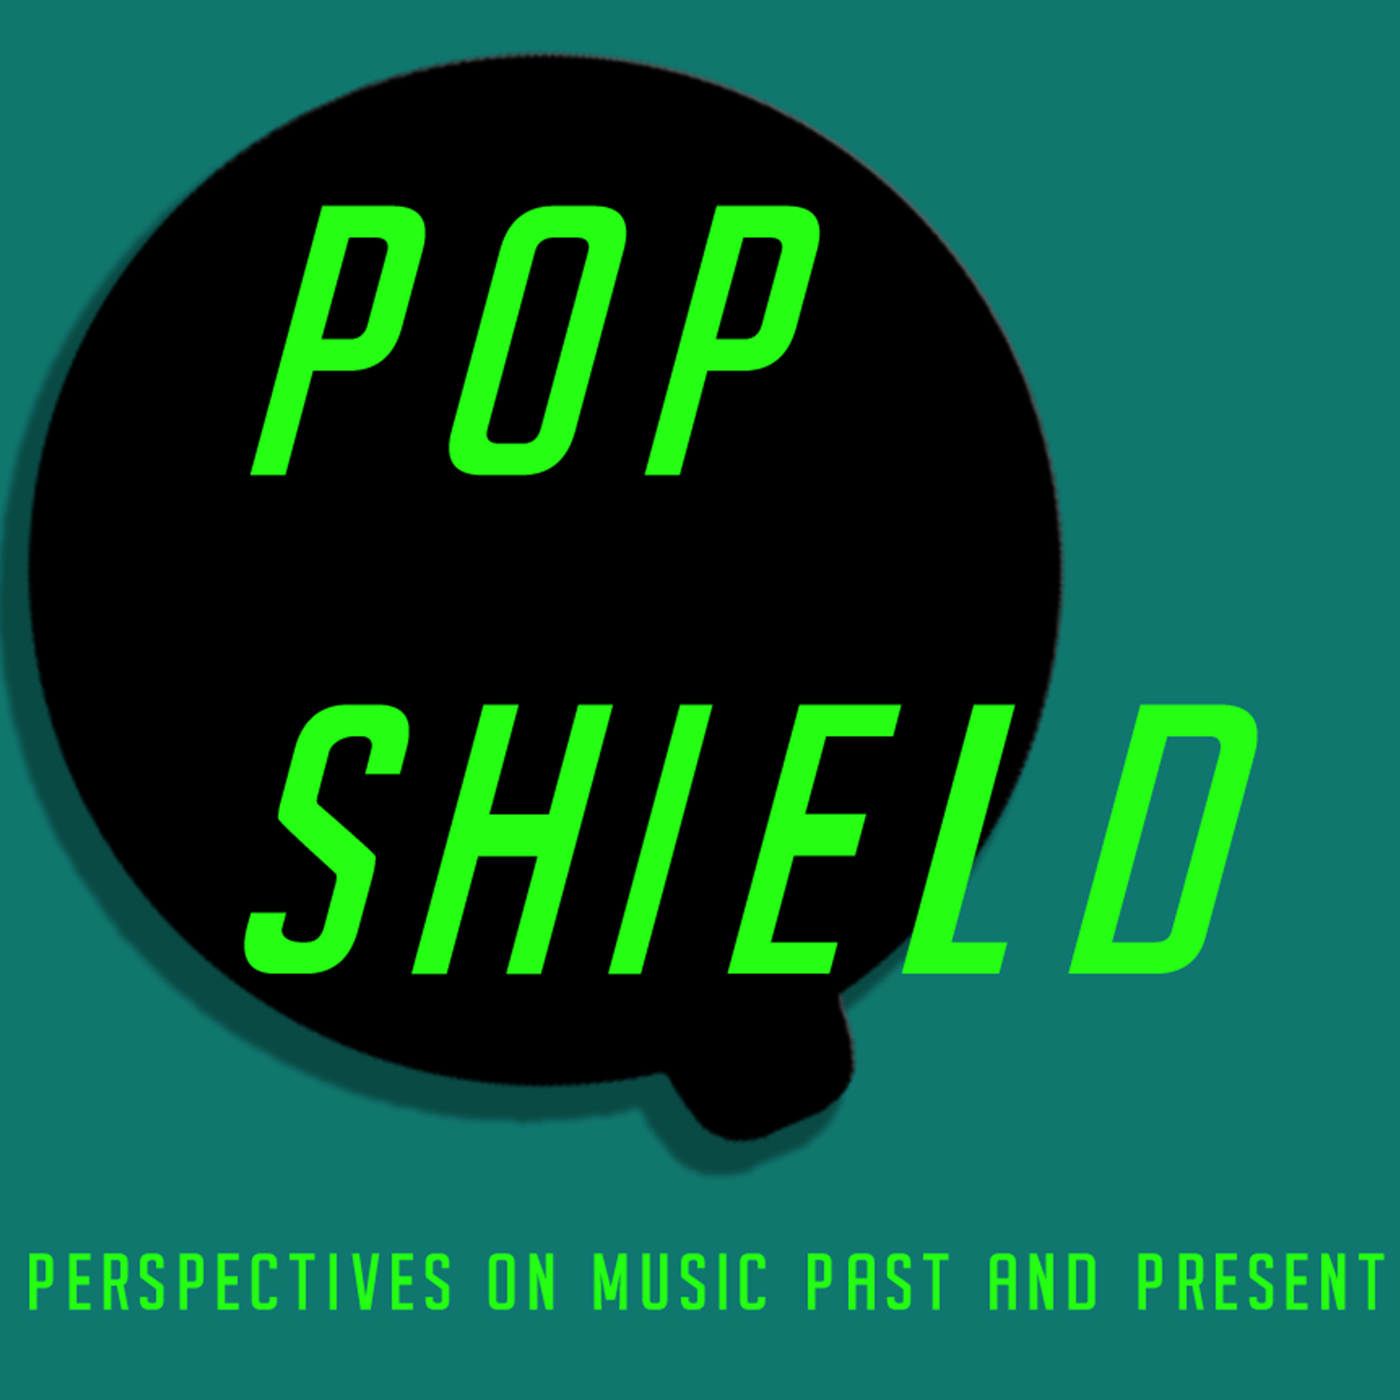 Pop Shield: Perspectives on Music Past and Present show image